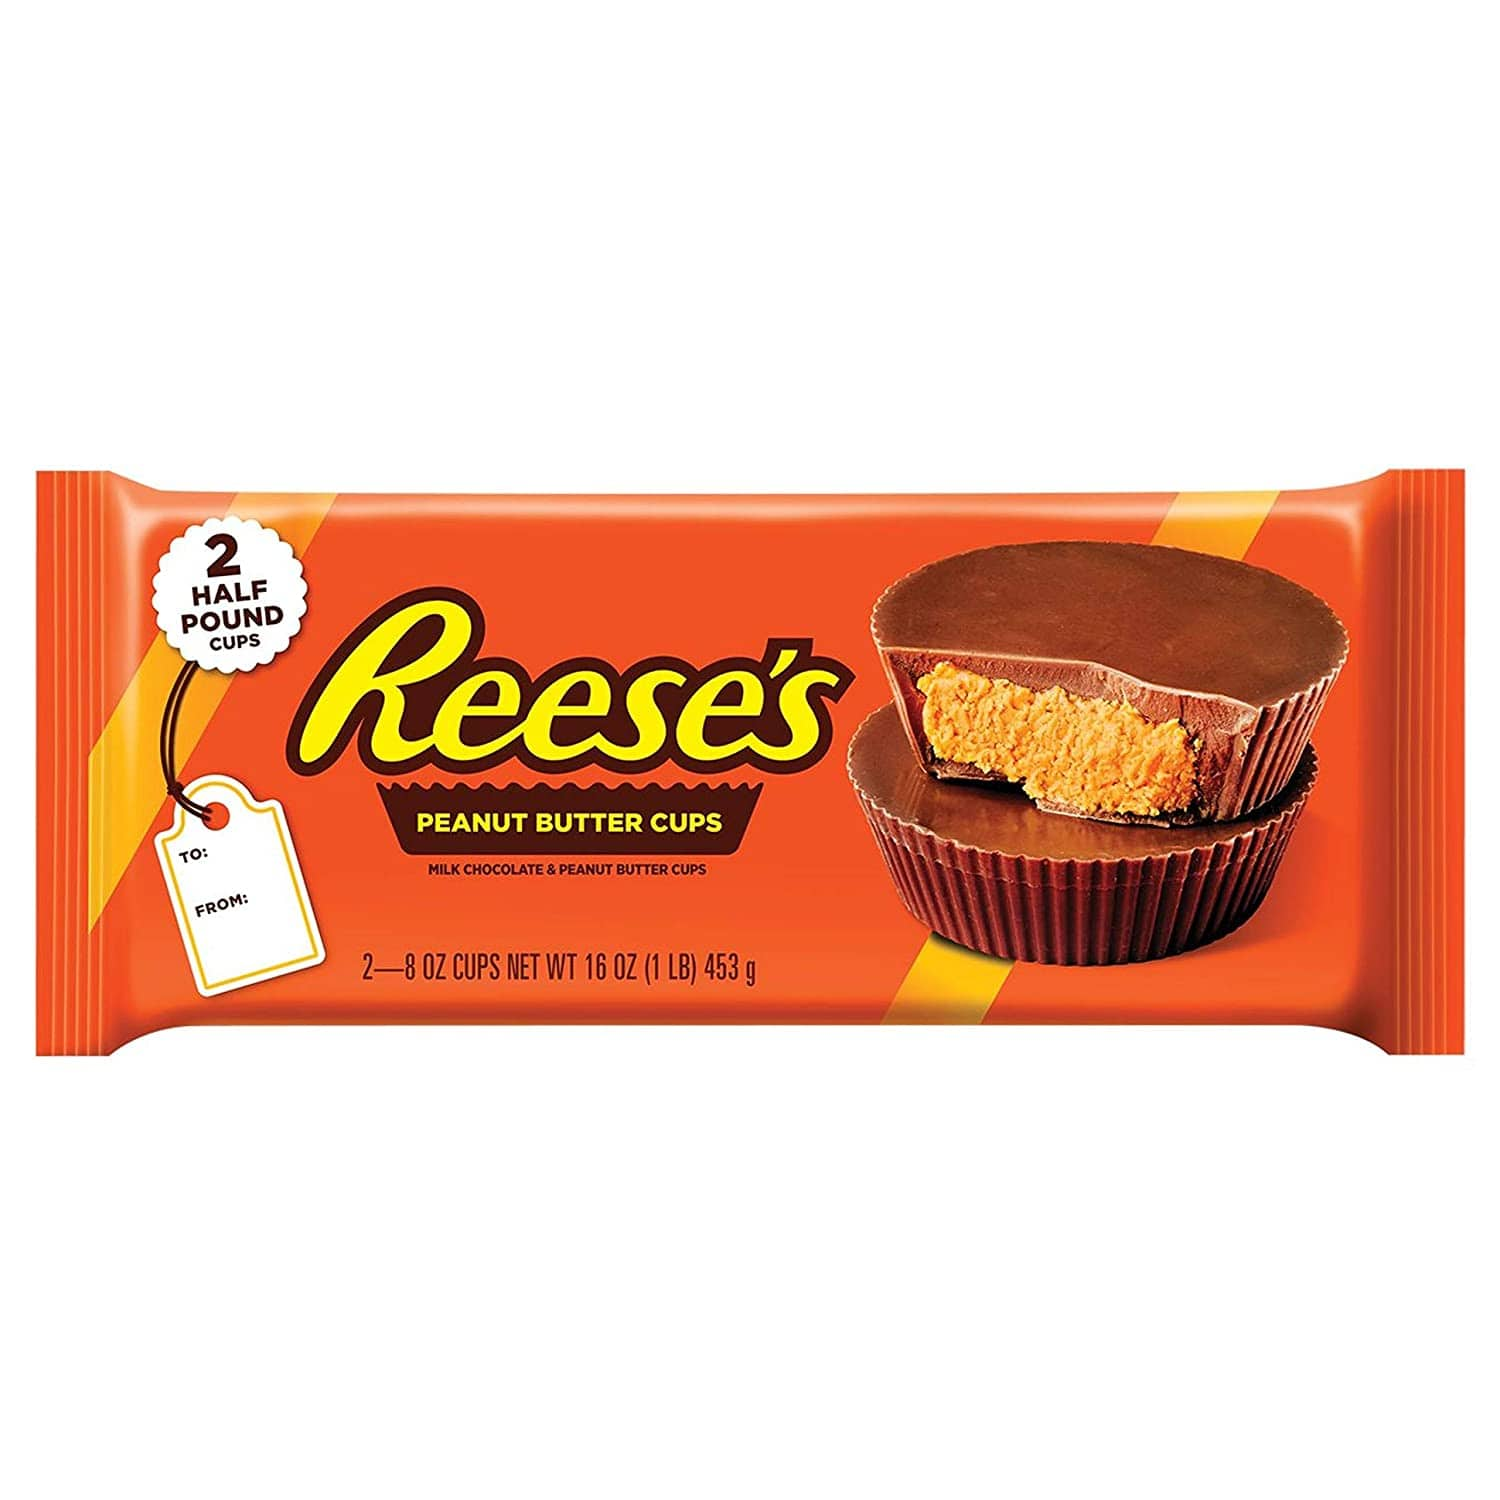 1-Lb Reese's Peanut Butter Giant Cups (2x 8oz) $4.12 & More + Free Shipping w/ Prime or on $25+